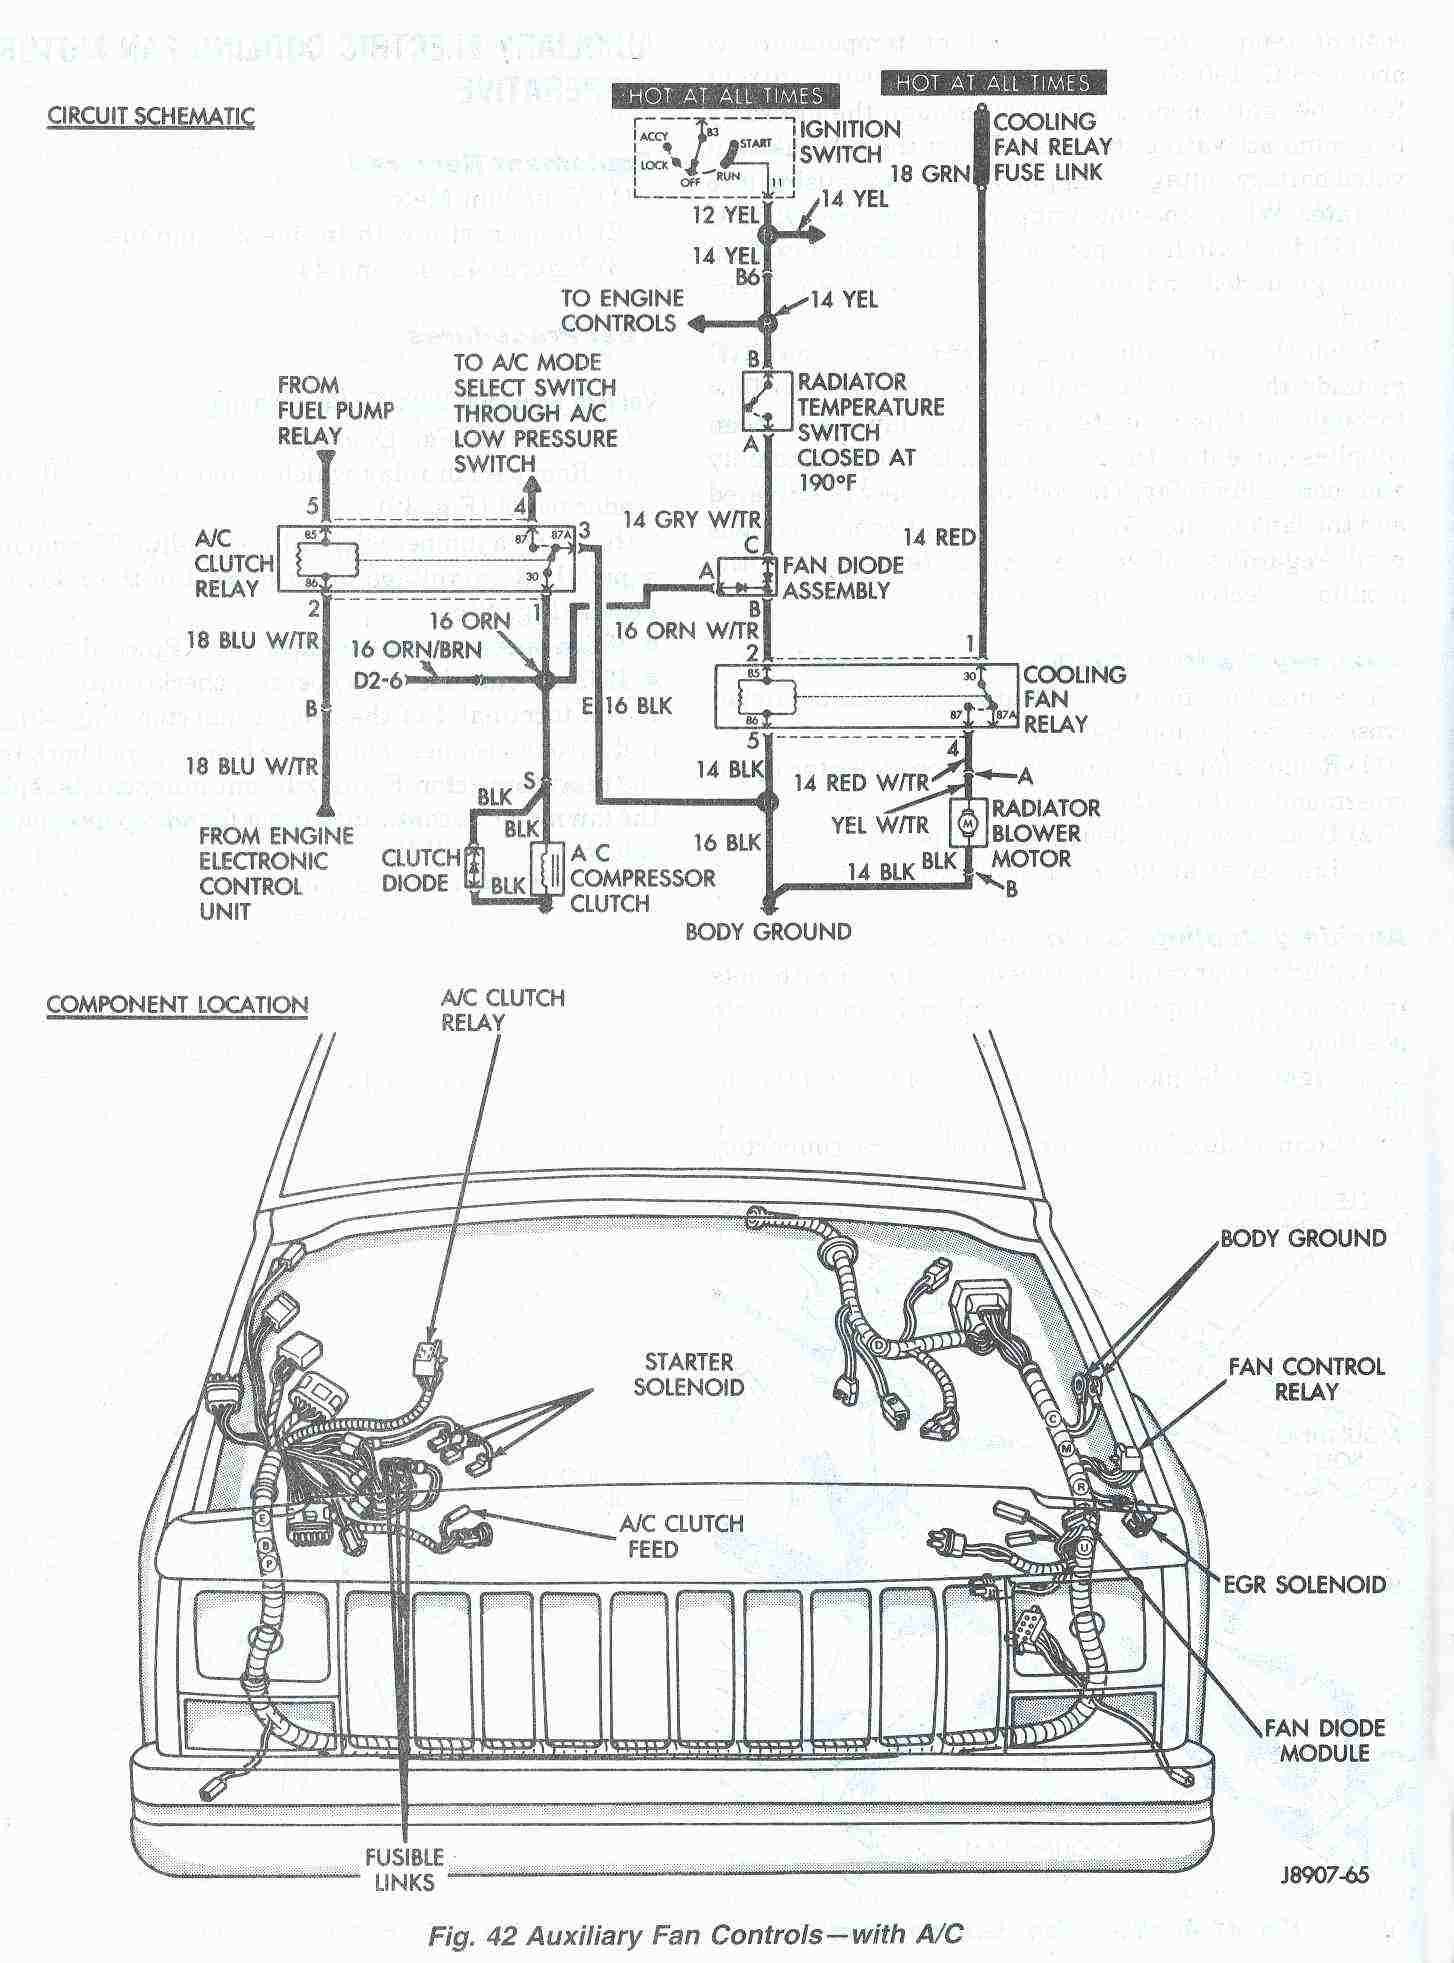 e8c83109bad6c41d377df8c1cb7a8dc4 at the asd relay if vole is not b16 check fuse 20 30 a good there wiring diagram for 1998 jeep cherokee at pacquiaovsvargaslive.co